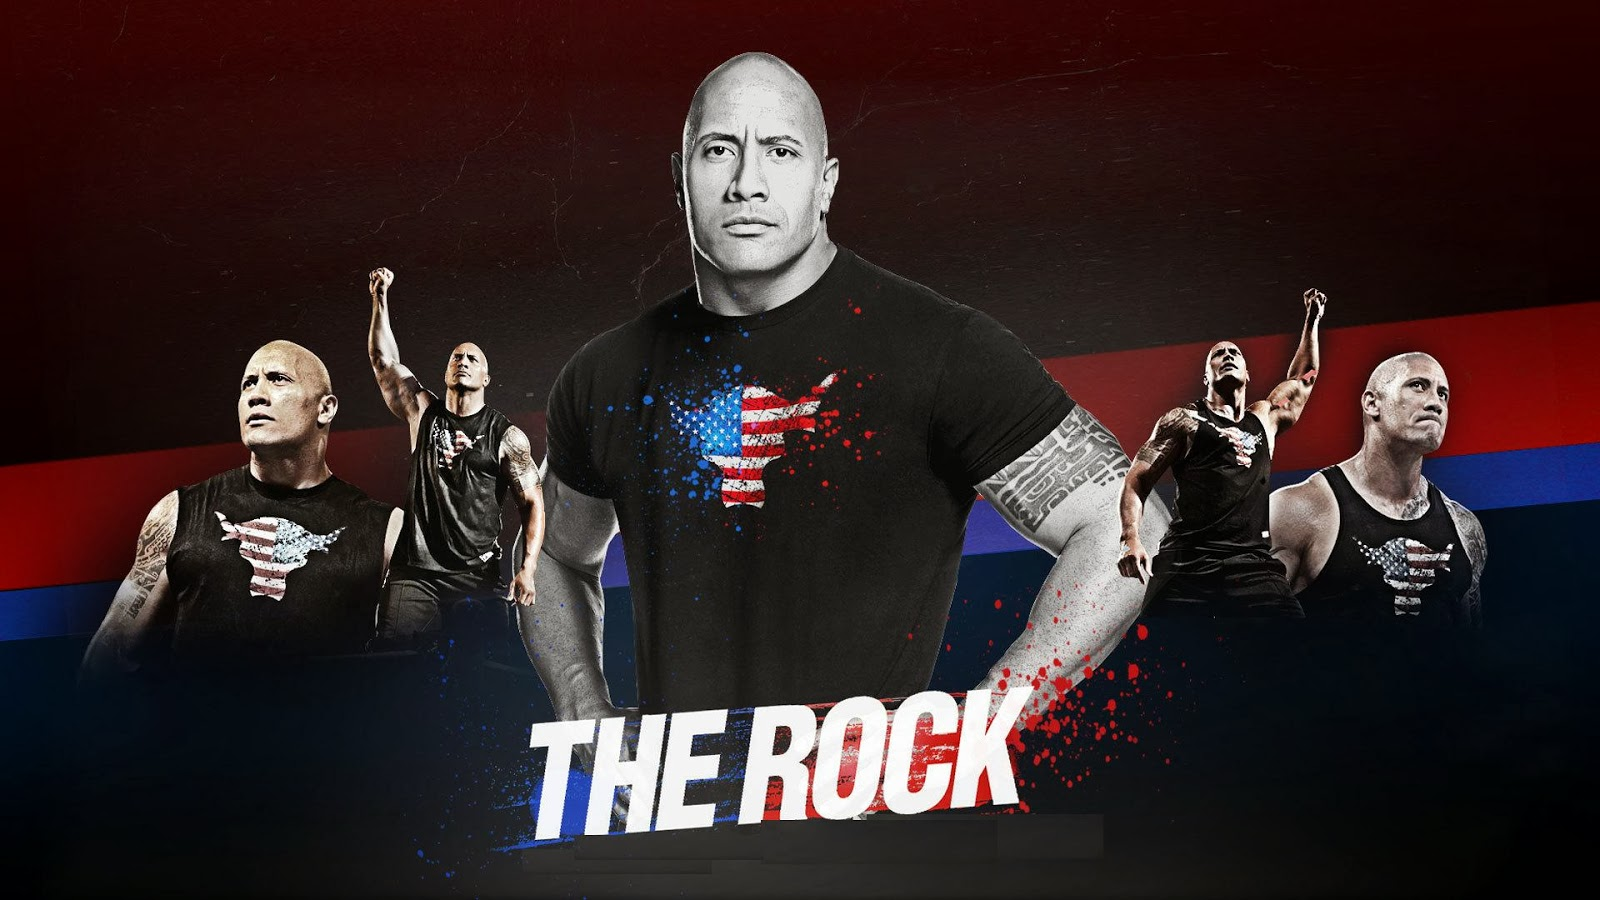 the rock hd wallpapers free download | wwe hd wallpaper free download